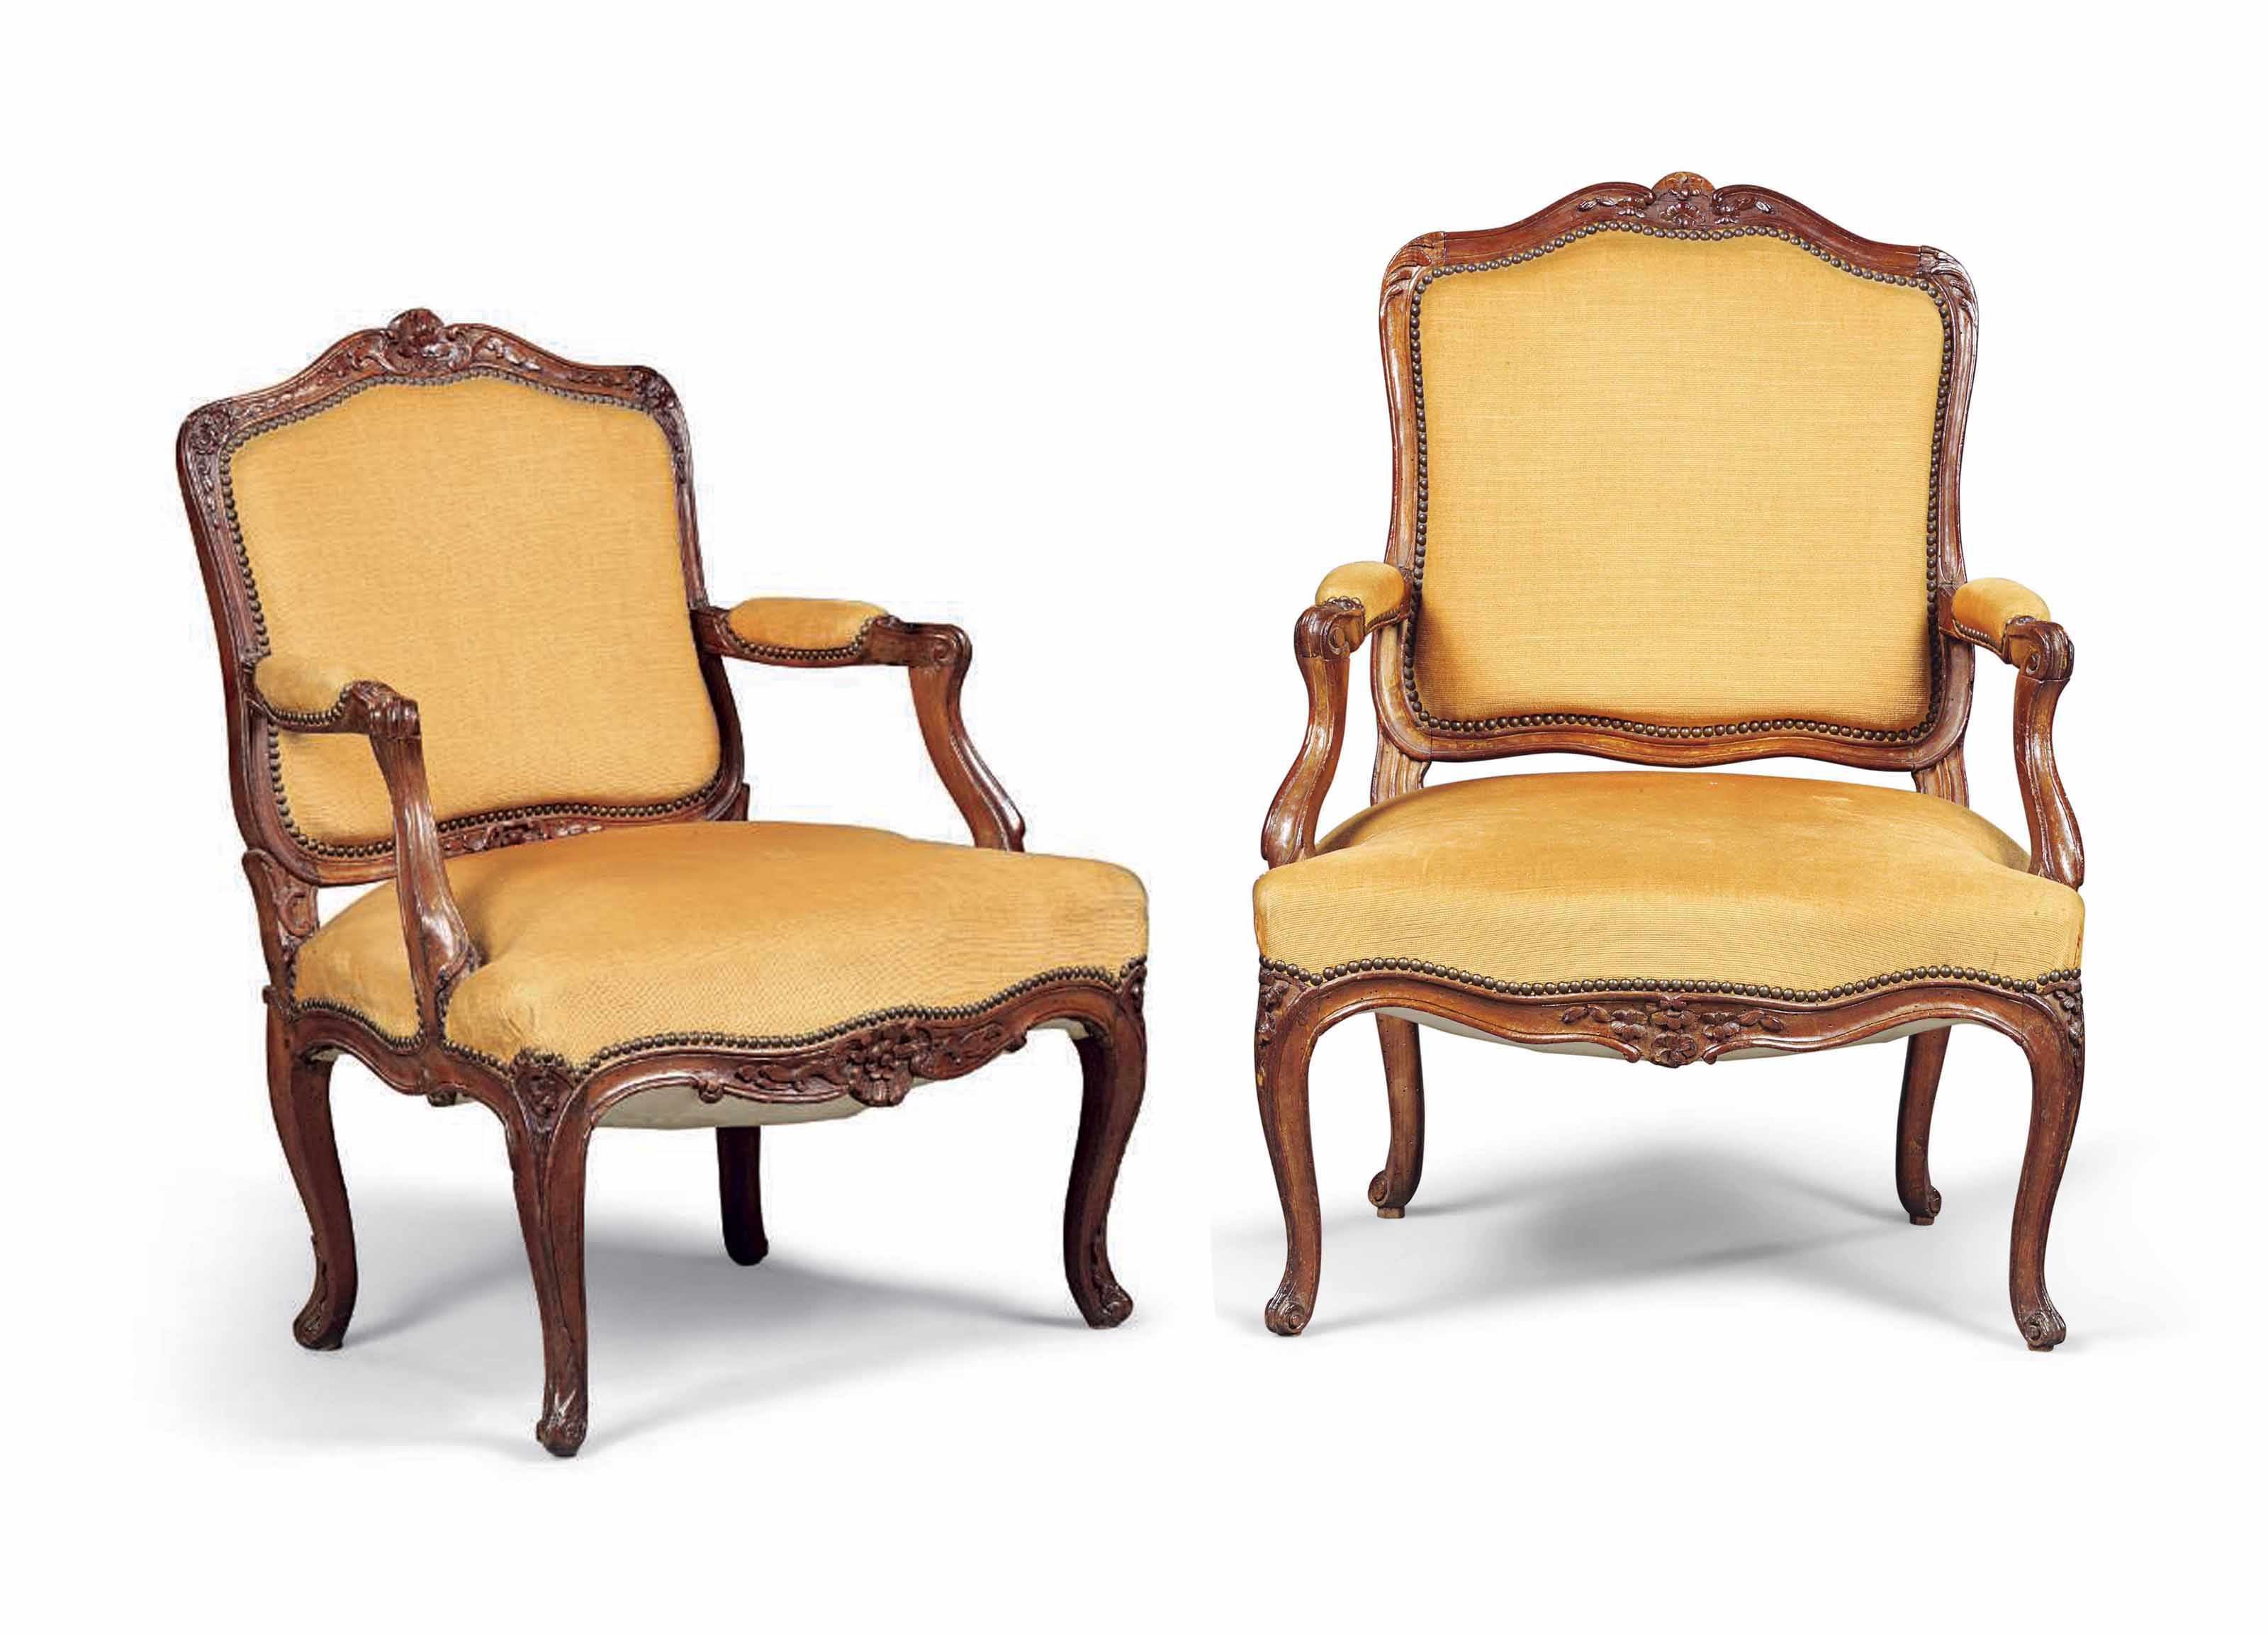 A NEAR PAIR OF LOUIS XV BEECH